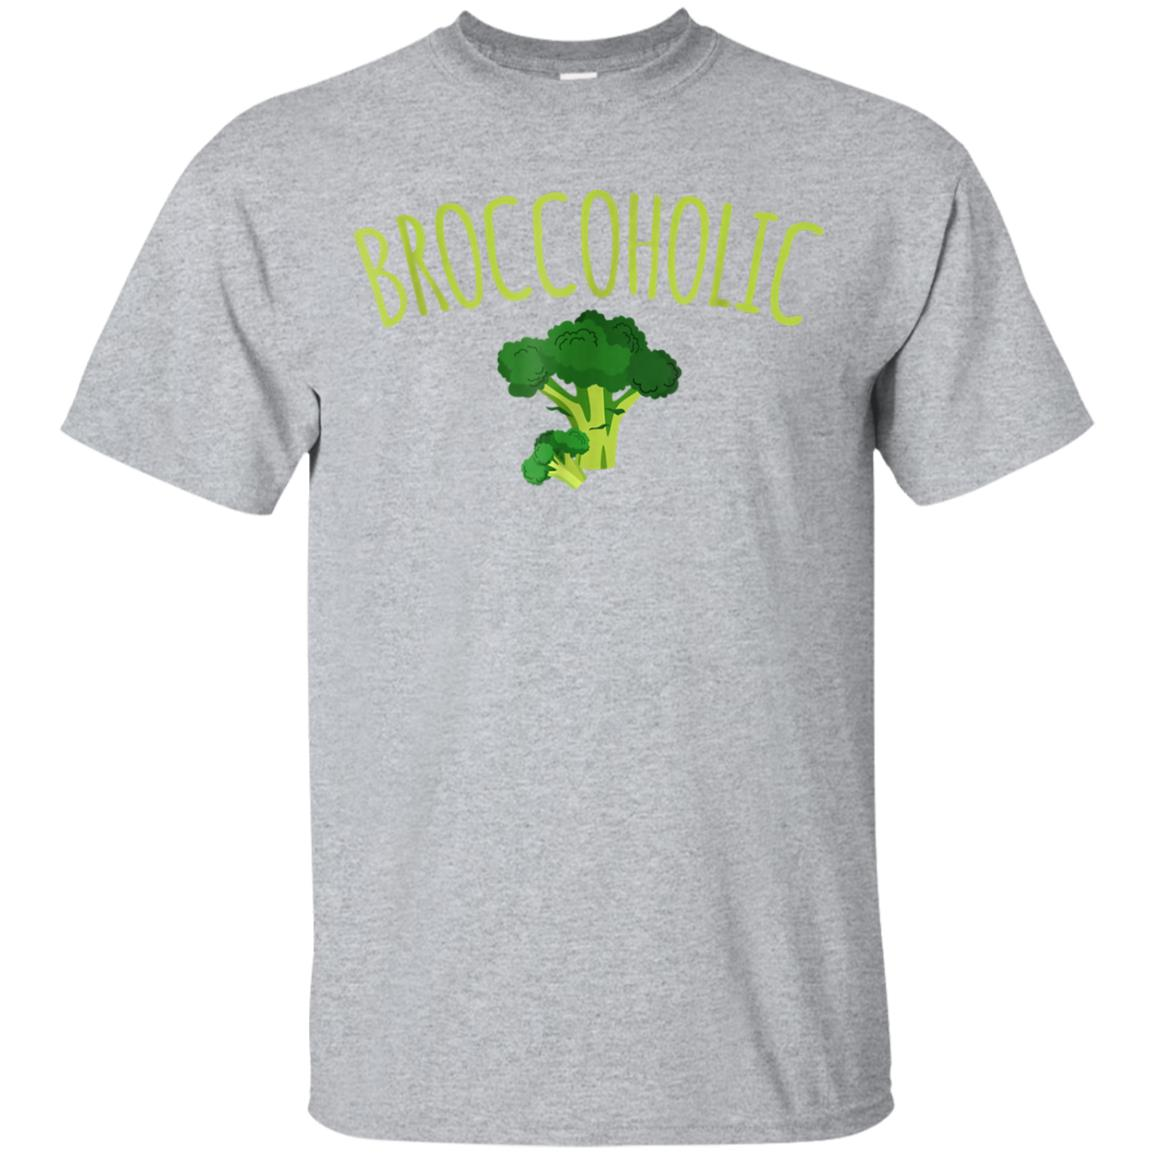 Funny Vegan BroccoliBroccoholic T-Shirt Perfect Gift Idea 99promocode